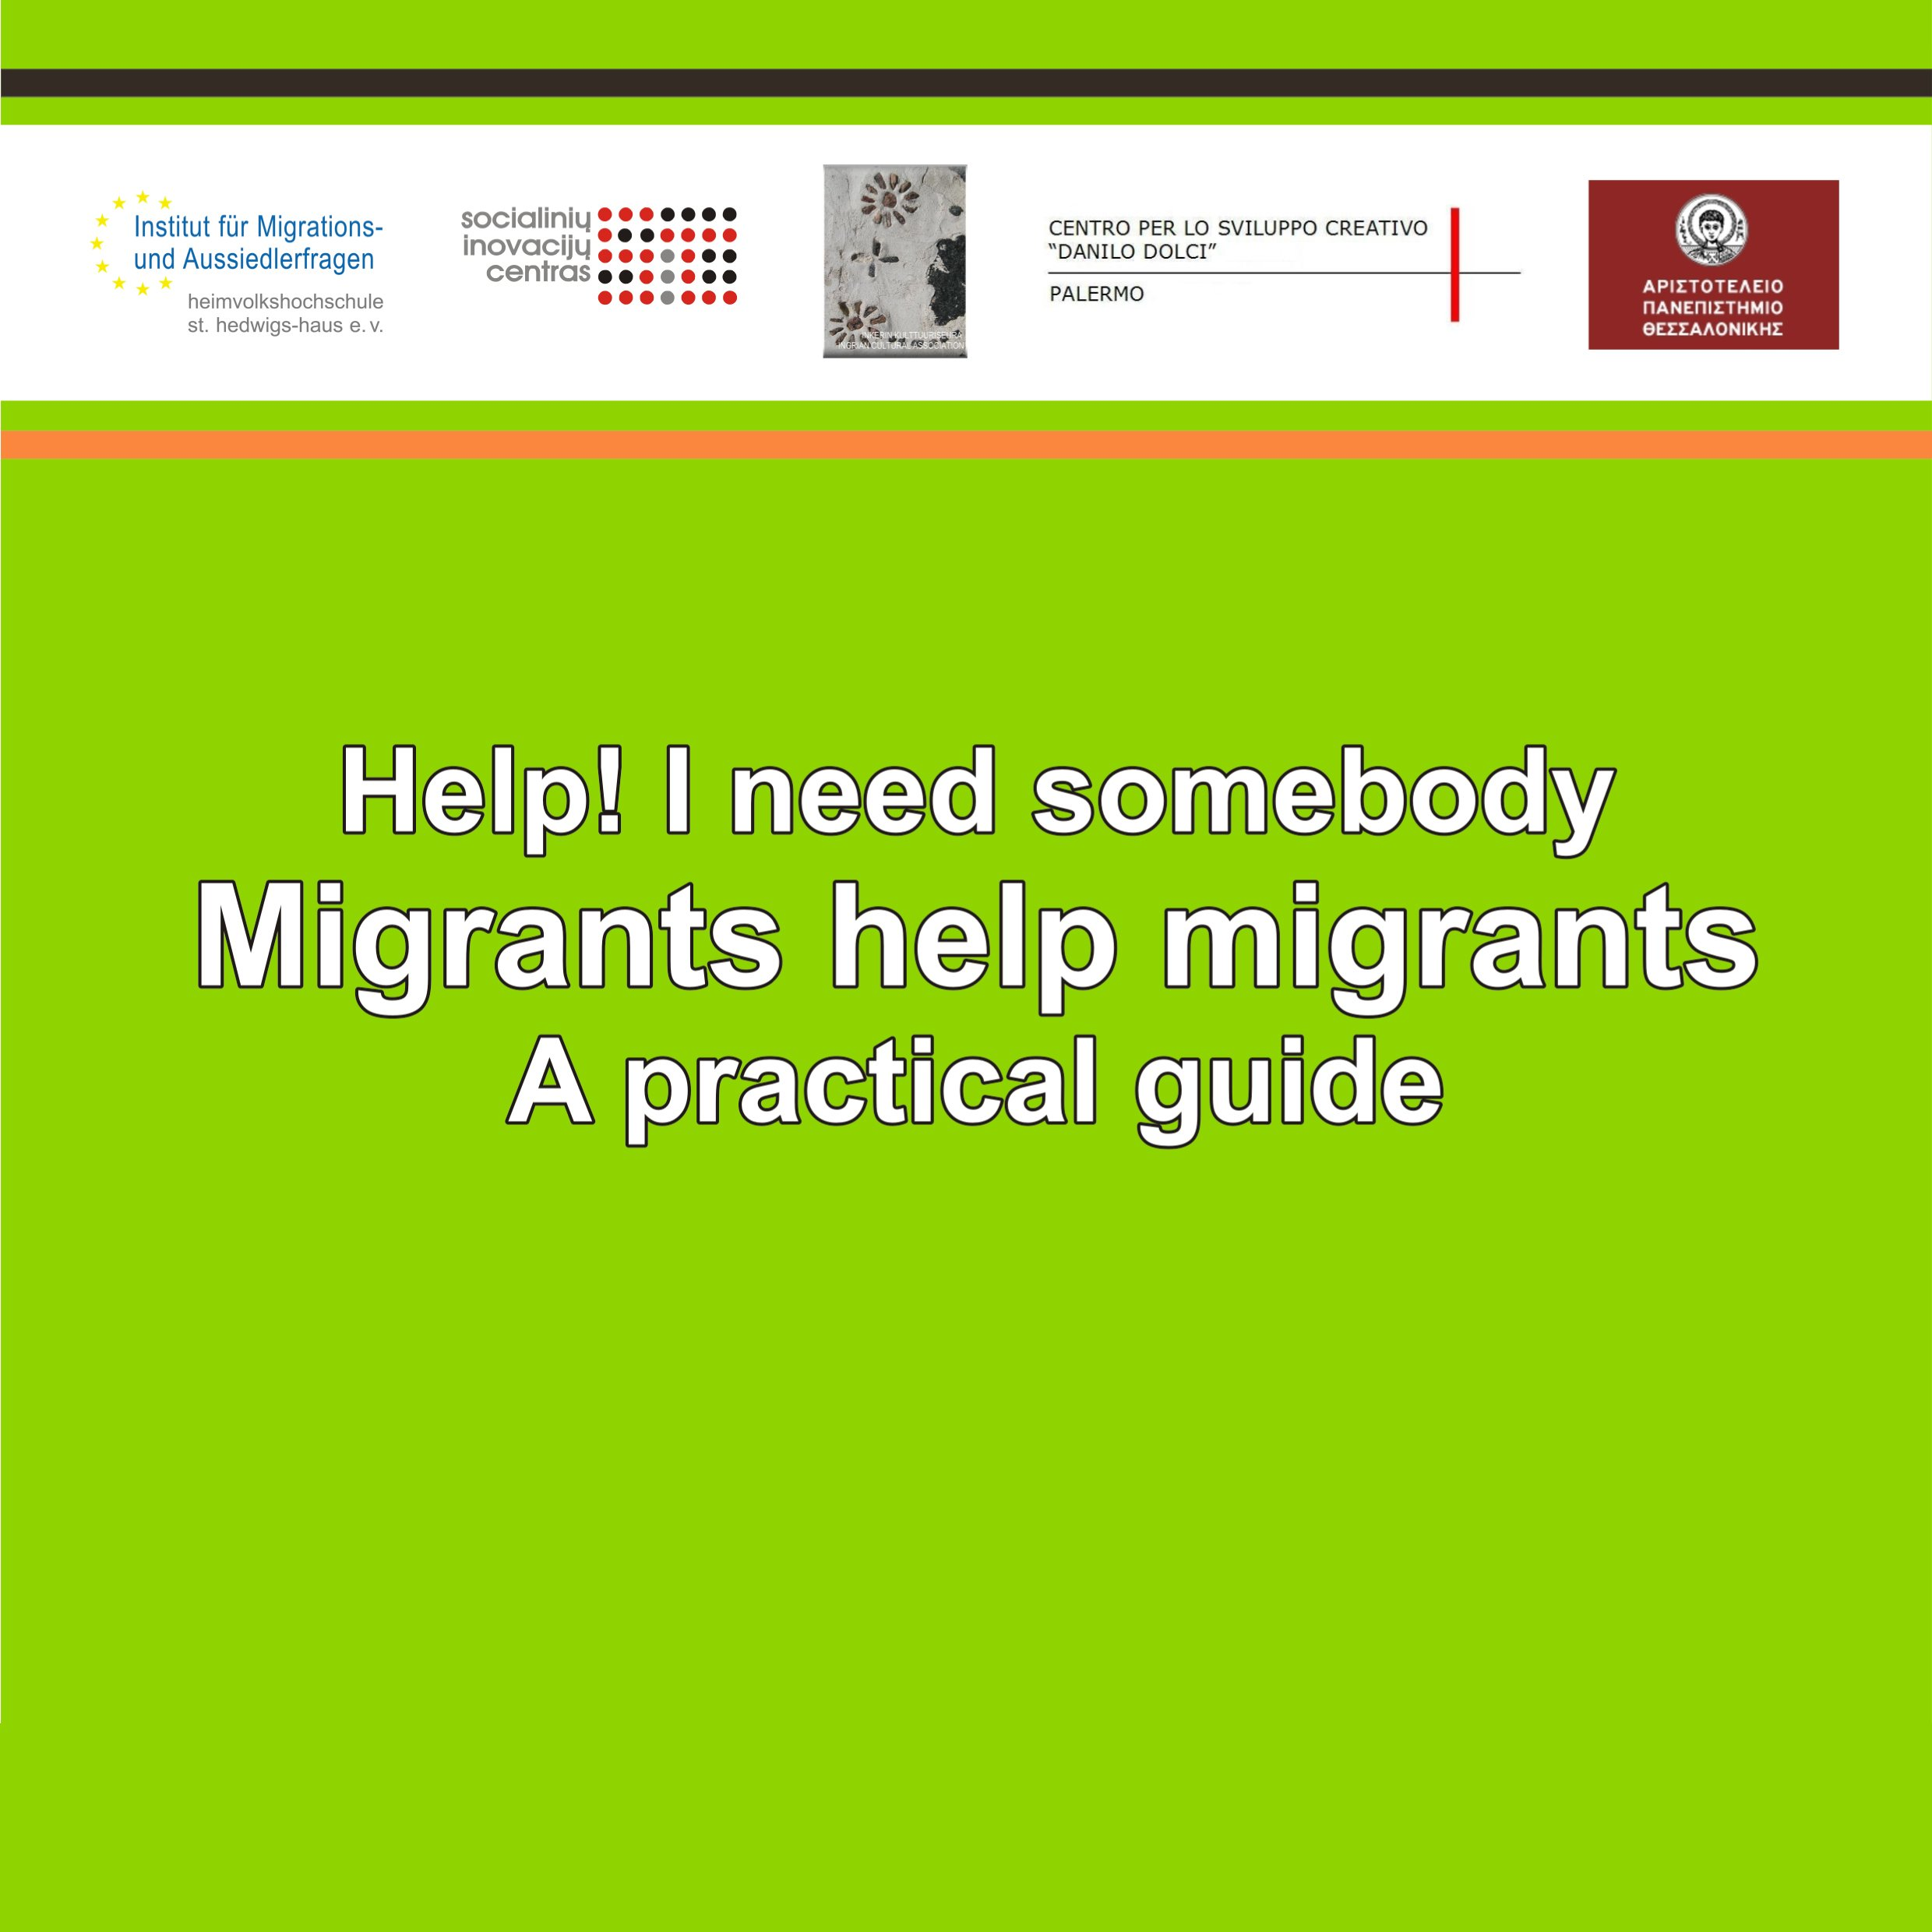 UPS – The practical guide: Migrants help migrants